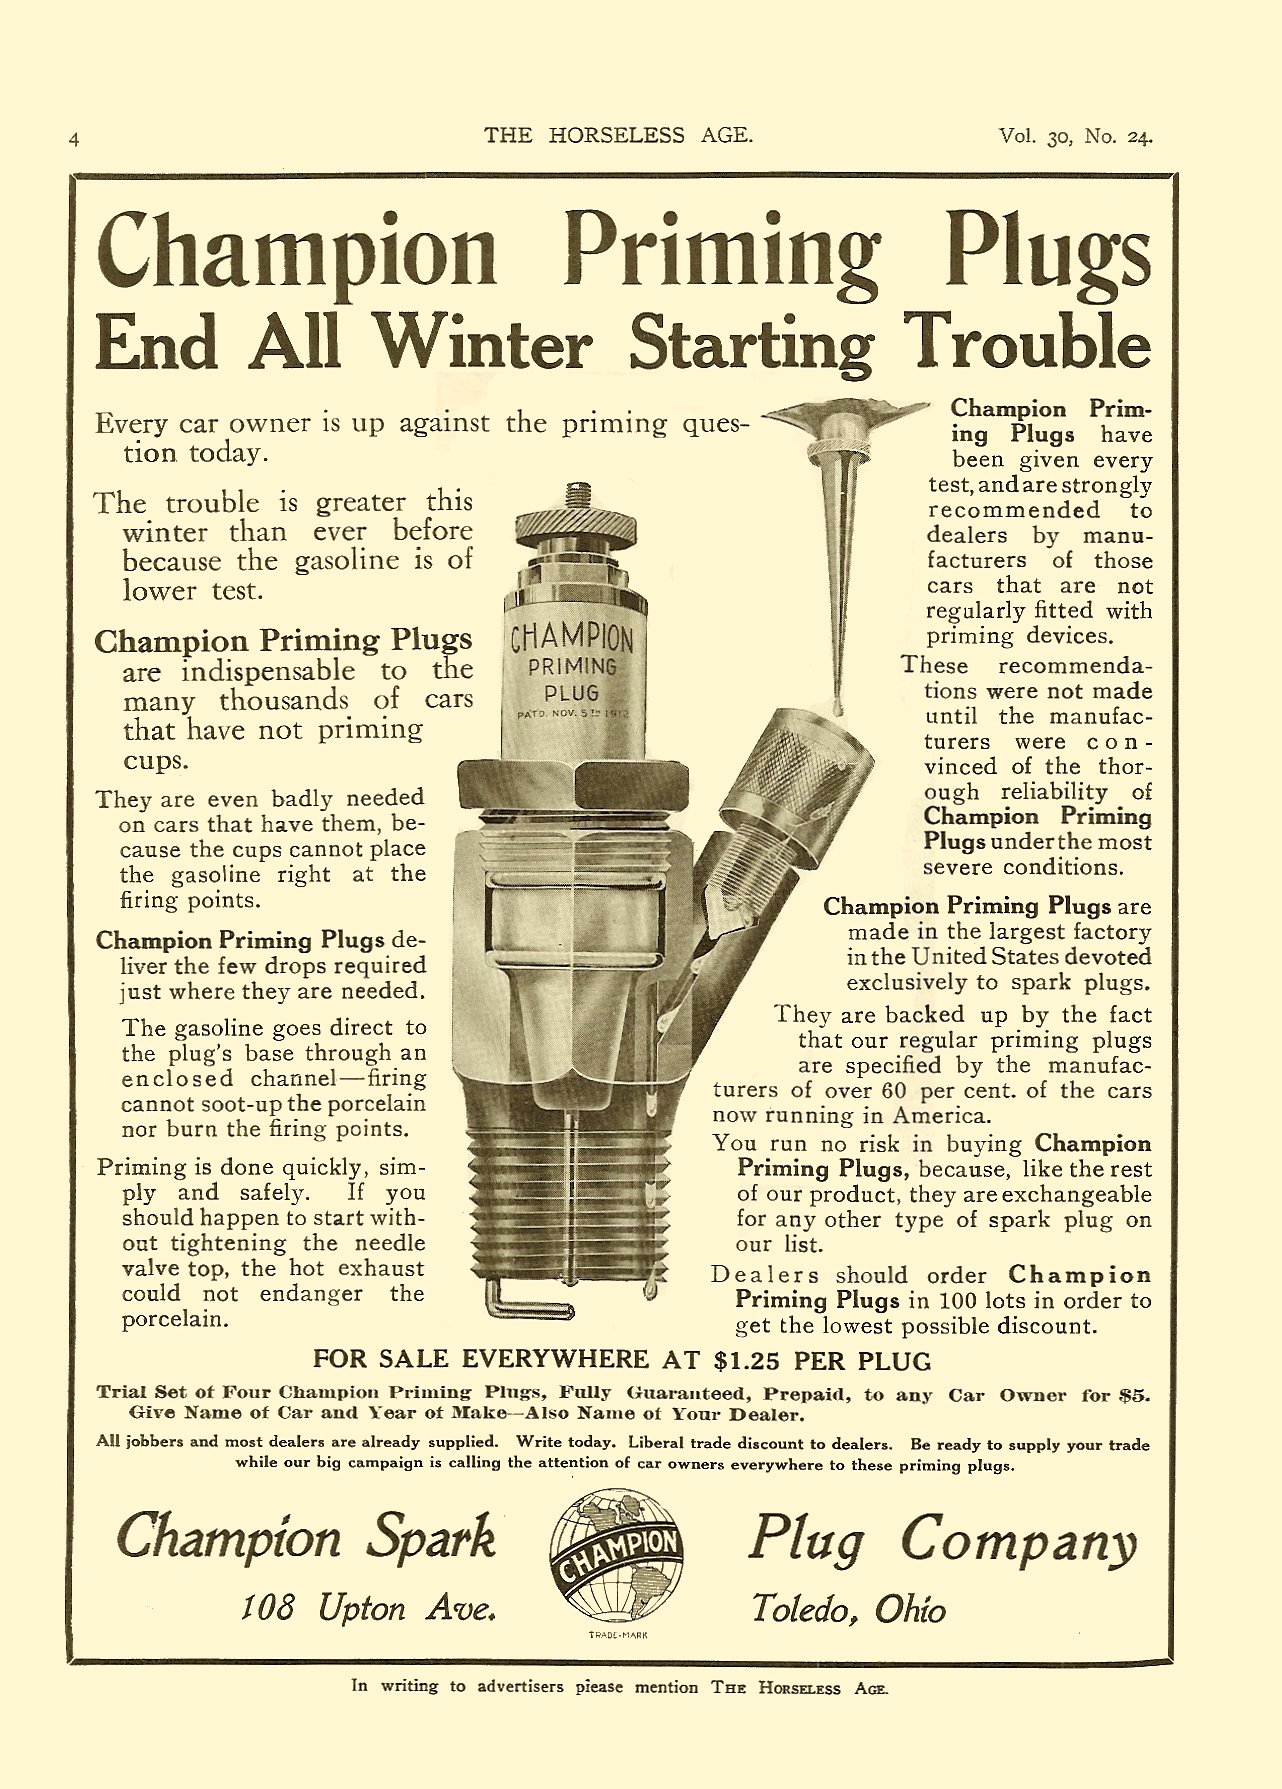 1912 12 11 CHAMPION Spark Plugs Toledo, Ohio THE HORSELESS AGE Dec 11, 1912 Vol. 30 No. 24 9″x12″ page 4